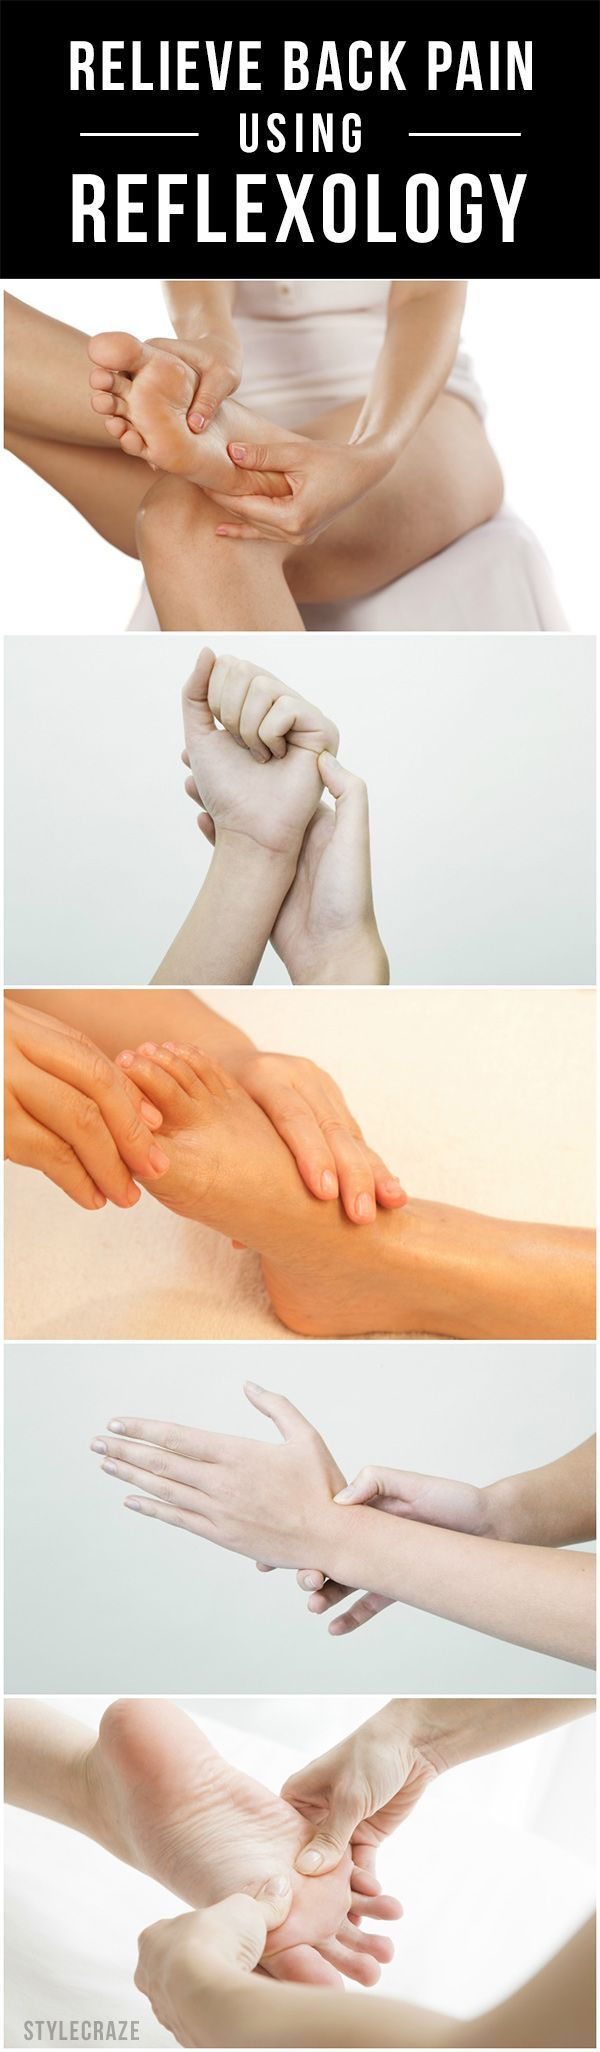 Reduce Your Back Pain And Relieve Stress With These Simple Self-Massage Techniques